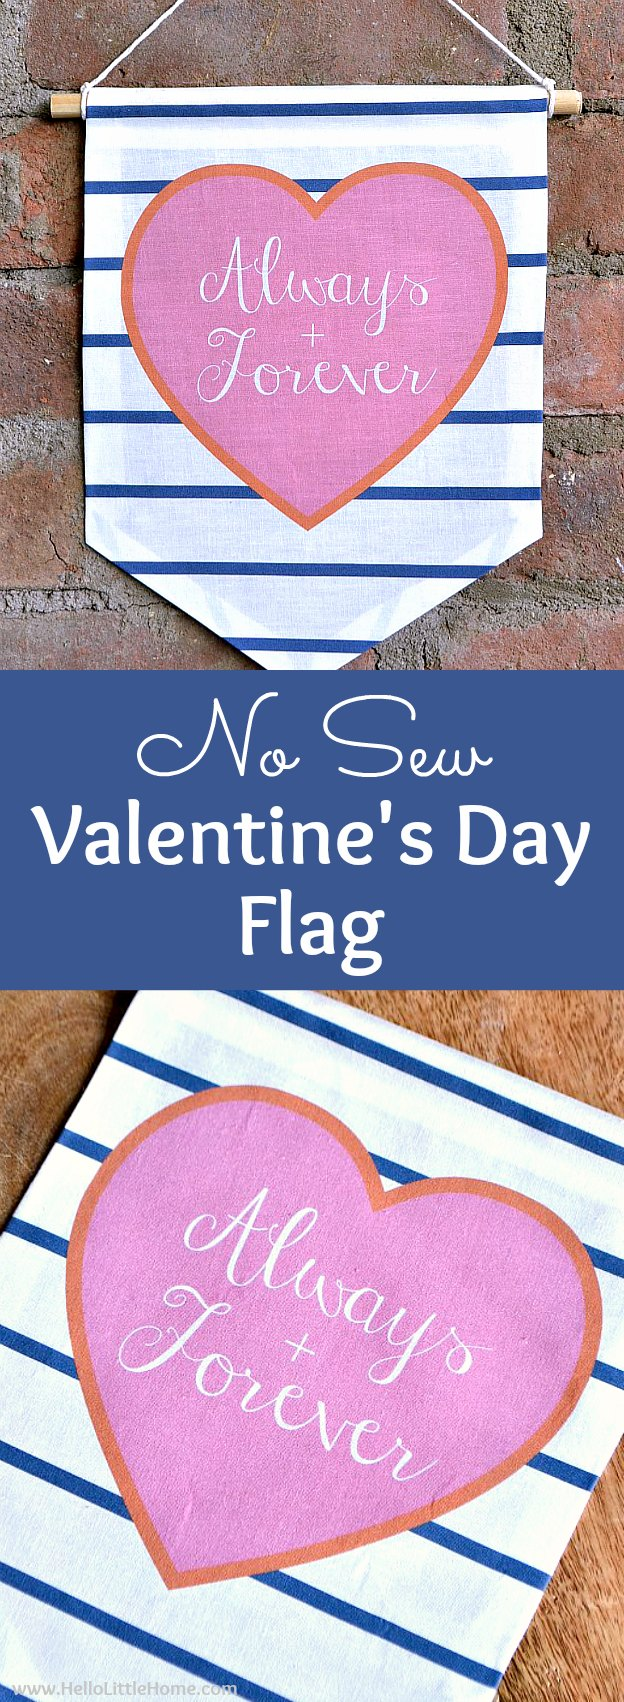 Adorable No Sew Valentine's Day Flag with free printable and easy tutorial! Learn how to make a DIY Valentine's Day flag … makes a cute Valentine's Day decoration or gift idea. This DIY Valentine's Day decor idea is a simple craft made with printable fabric that's ready in minutes.. The modern heart design would look great in your dining room, living room, bedroom, or anywhere! | Hello Little Home